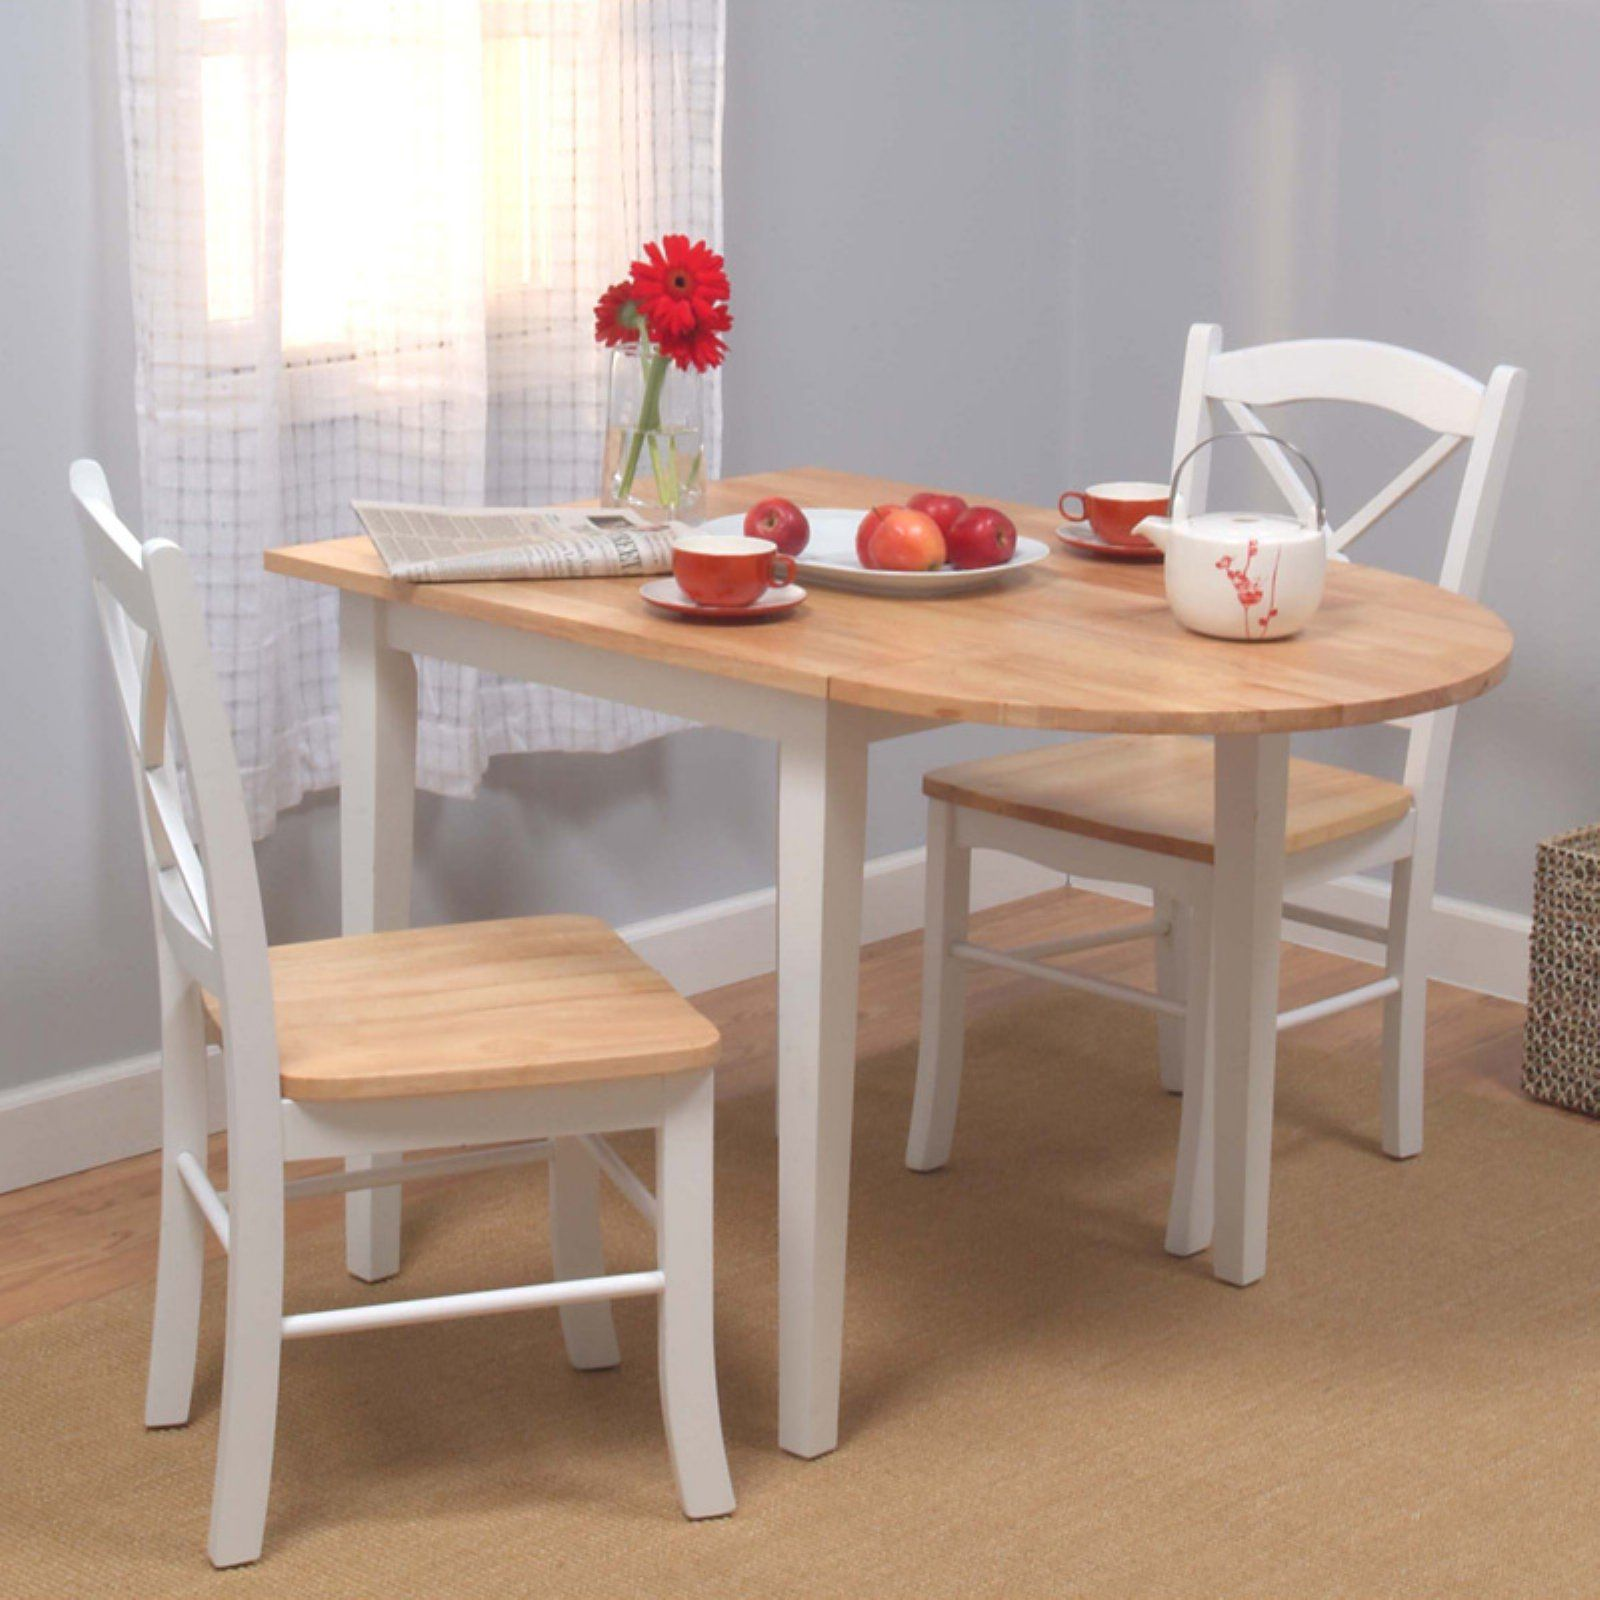 Target Marketing Systems Tiffany 3 Piece Dining Table Set 3 Piece Dining Set